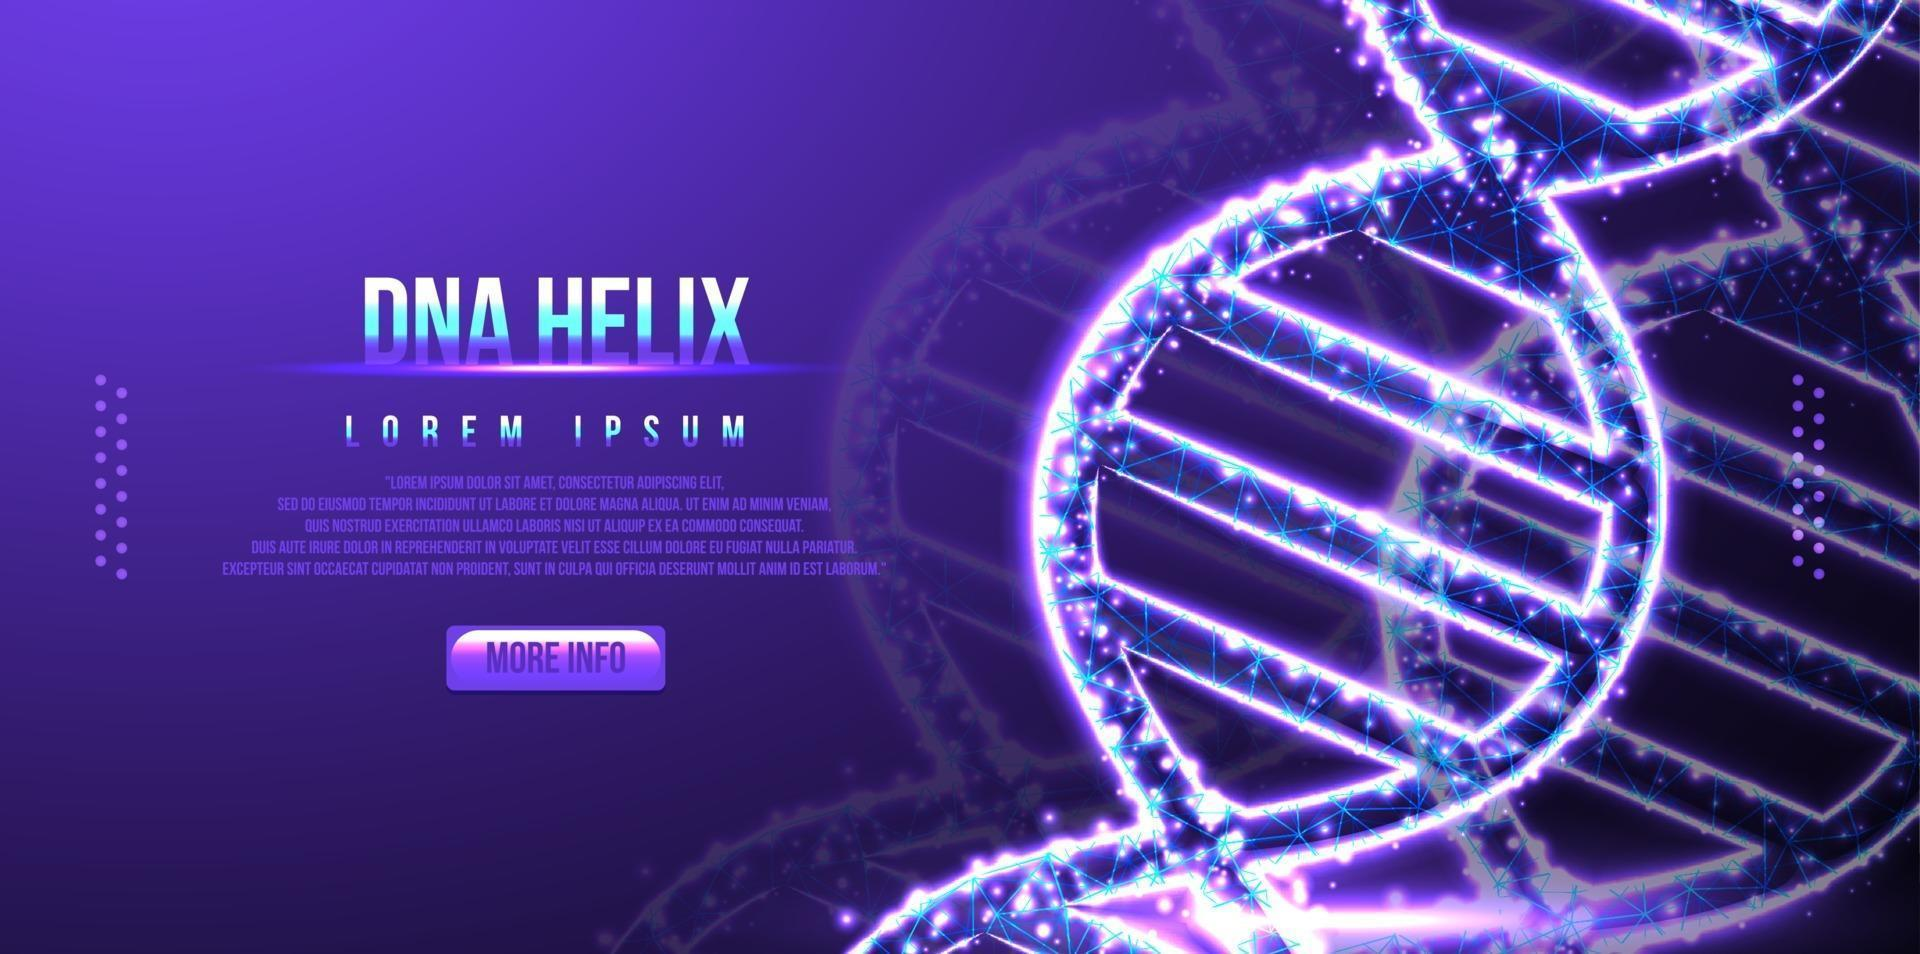 Futuristic DNA, low poly wireframe design vector